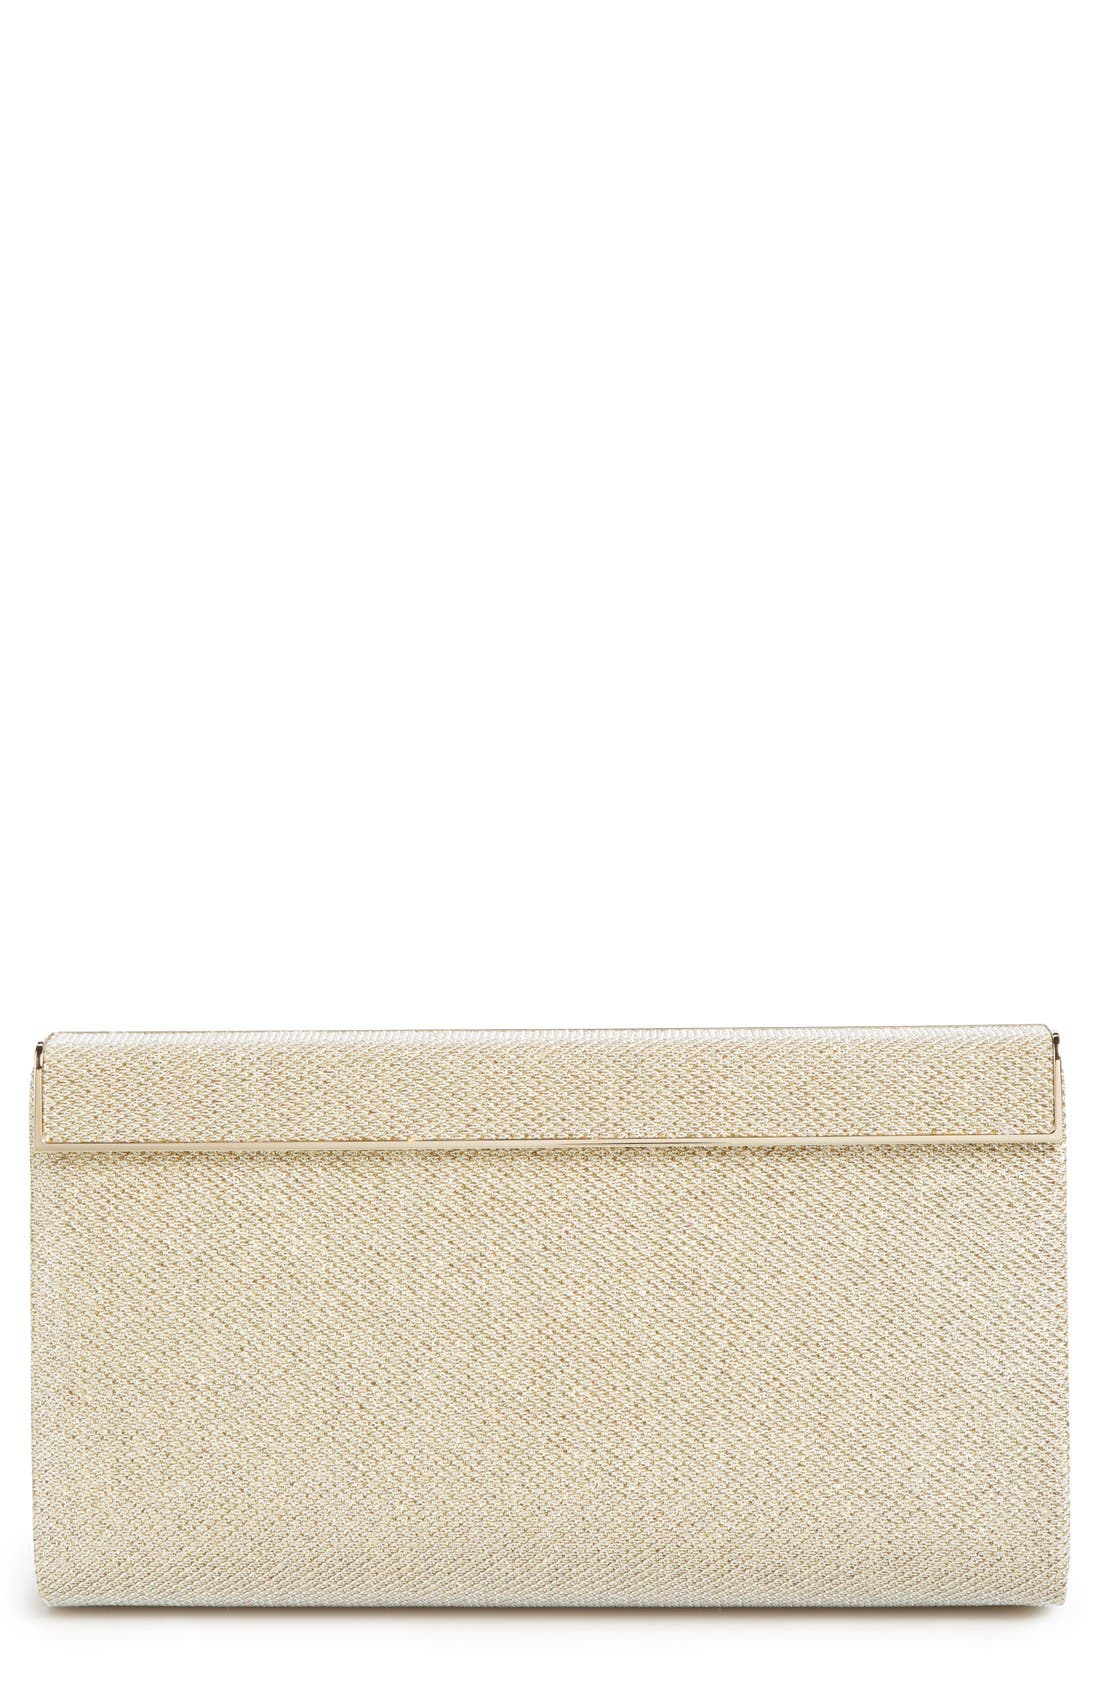 Alternate Image 1 Selected - Jimmy Choo 'Cayla' Lamé Glitter Clutch